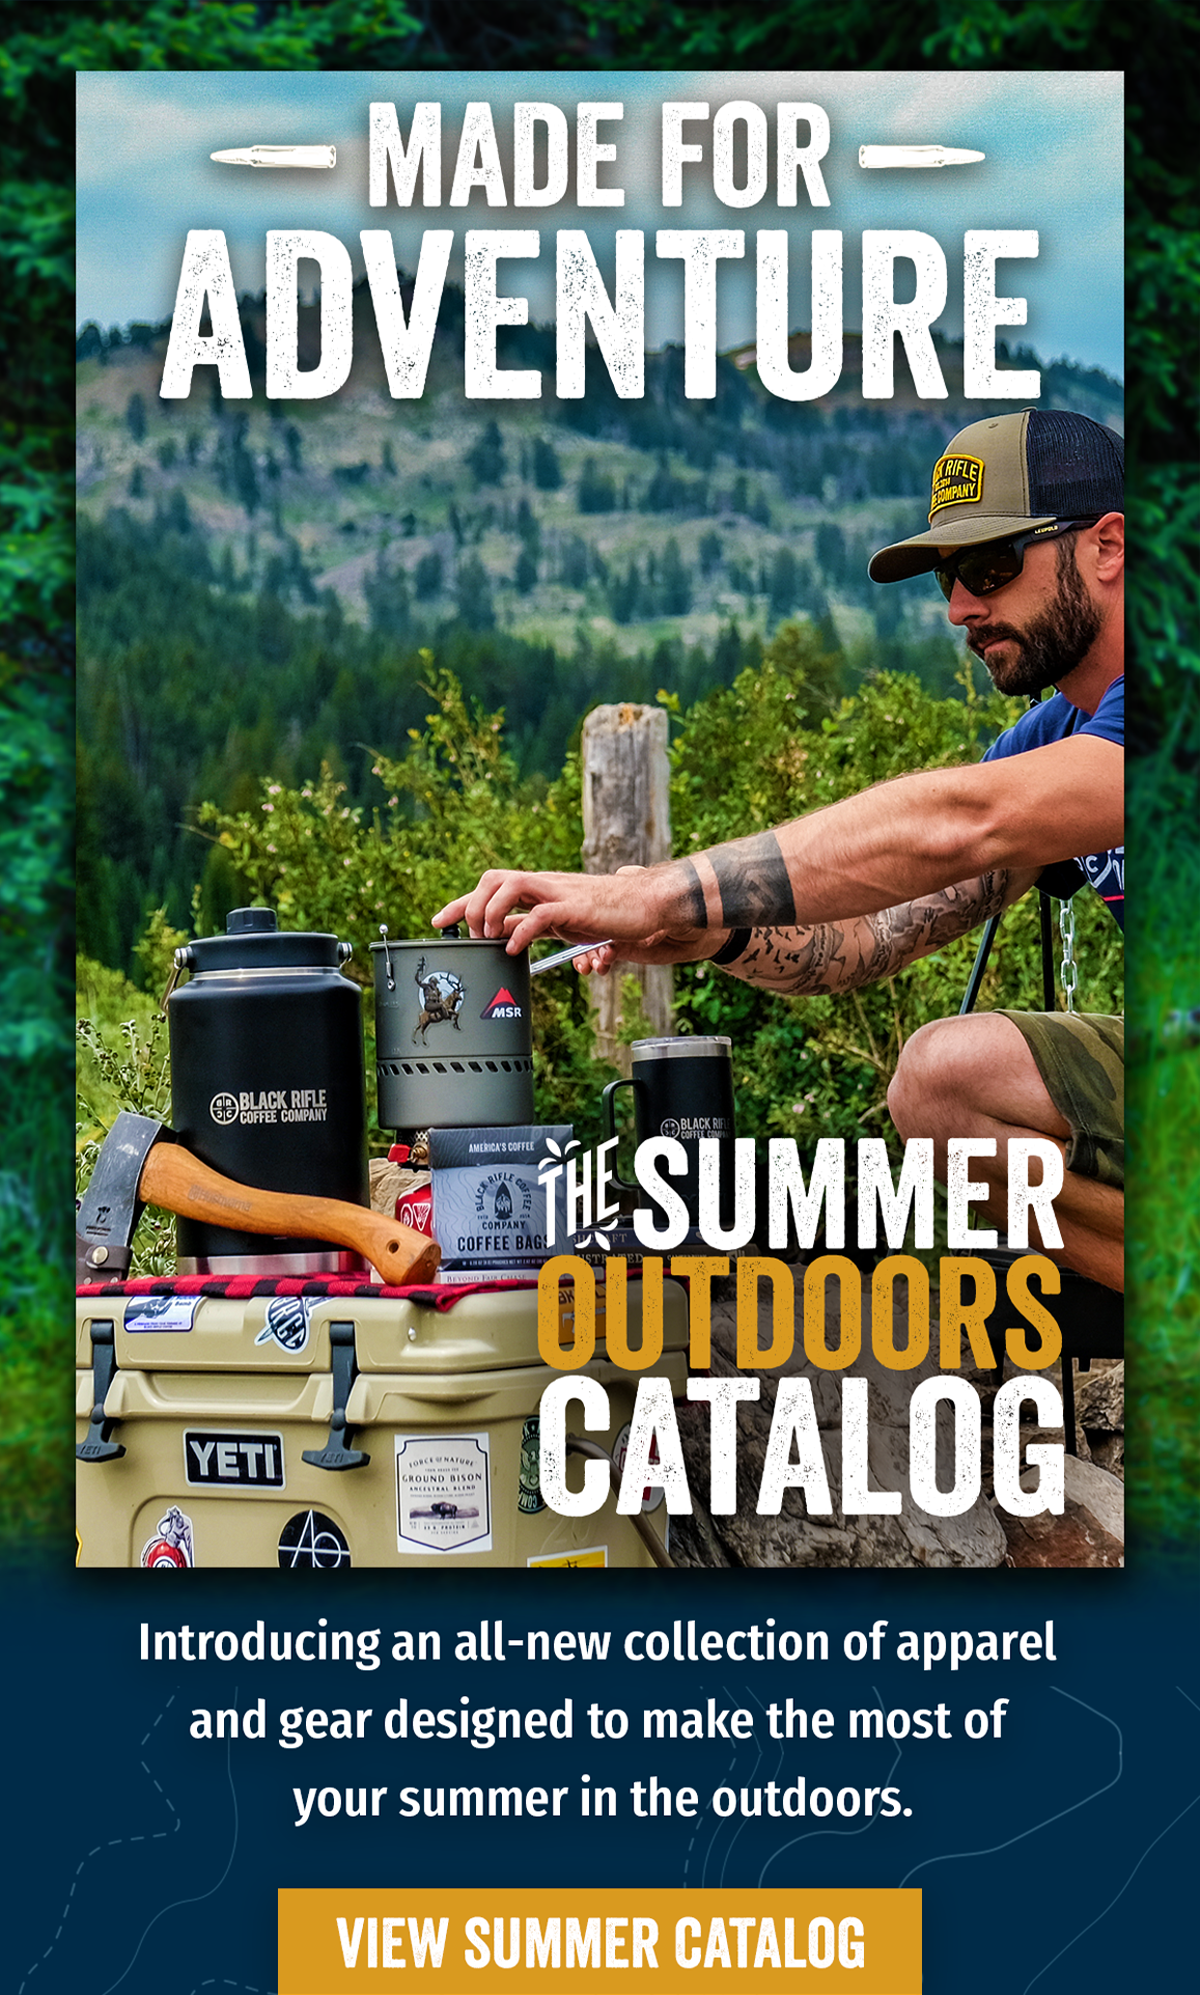 View the Summer Outdoors Catalog